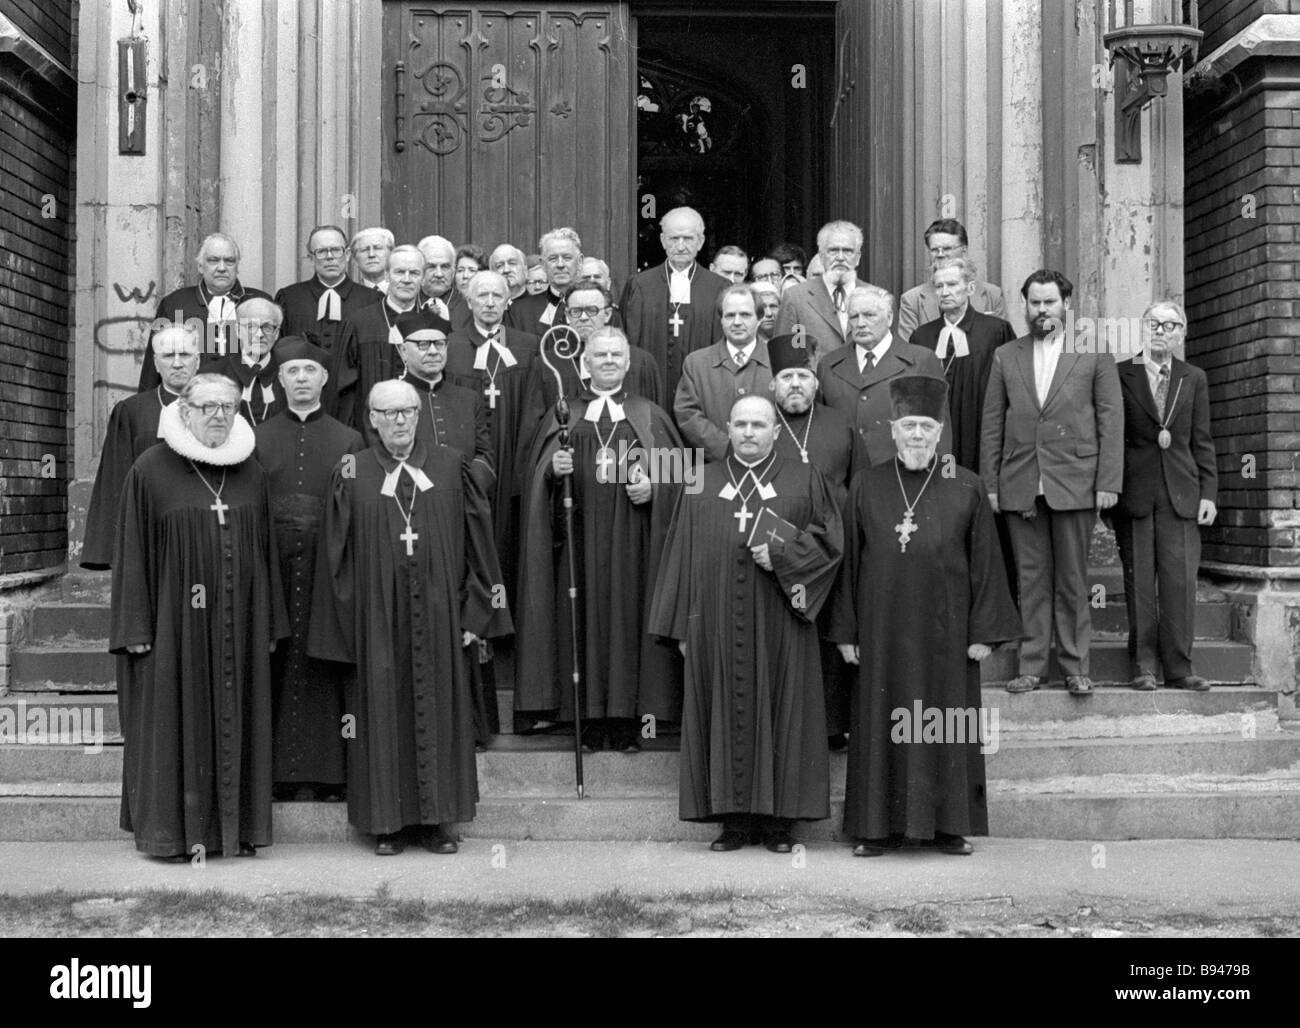 Clergymen after a service in the Church of St Paul on VE Day - Stock Image